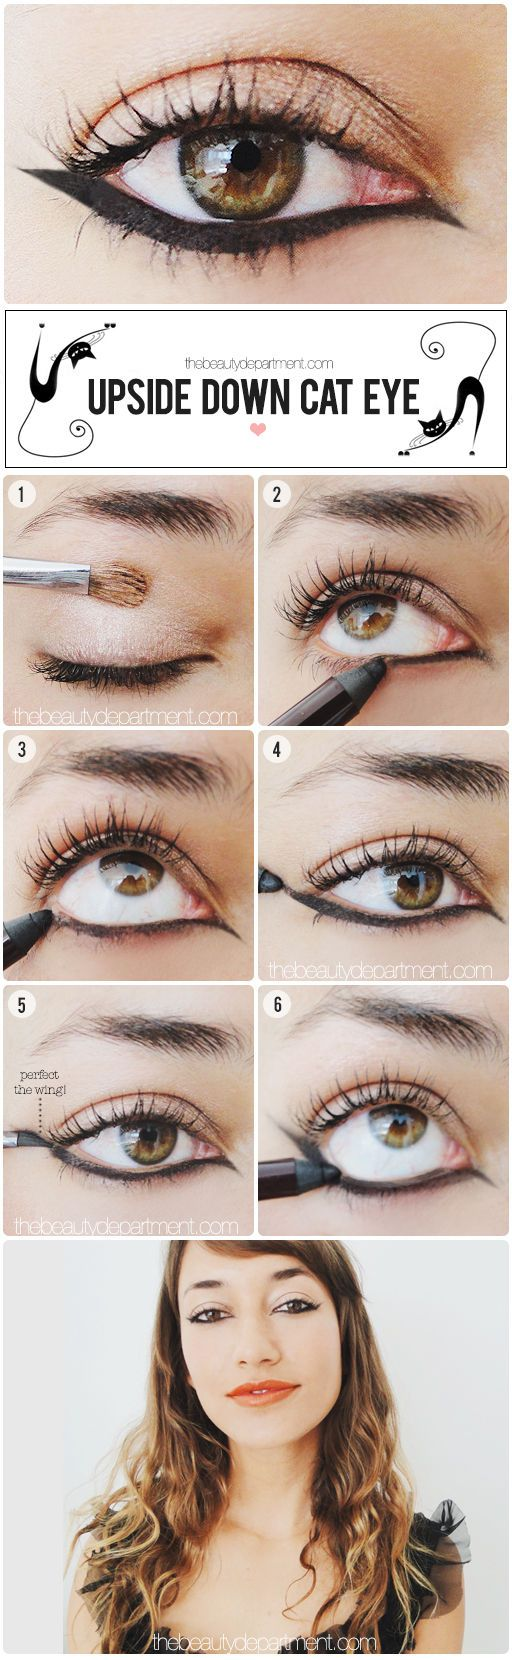 Try an upside down cat eye for a more edgy look and dare to be different!